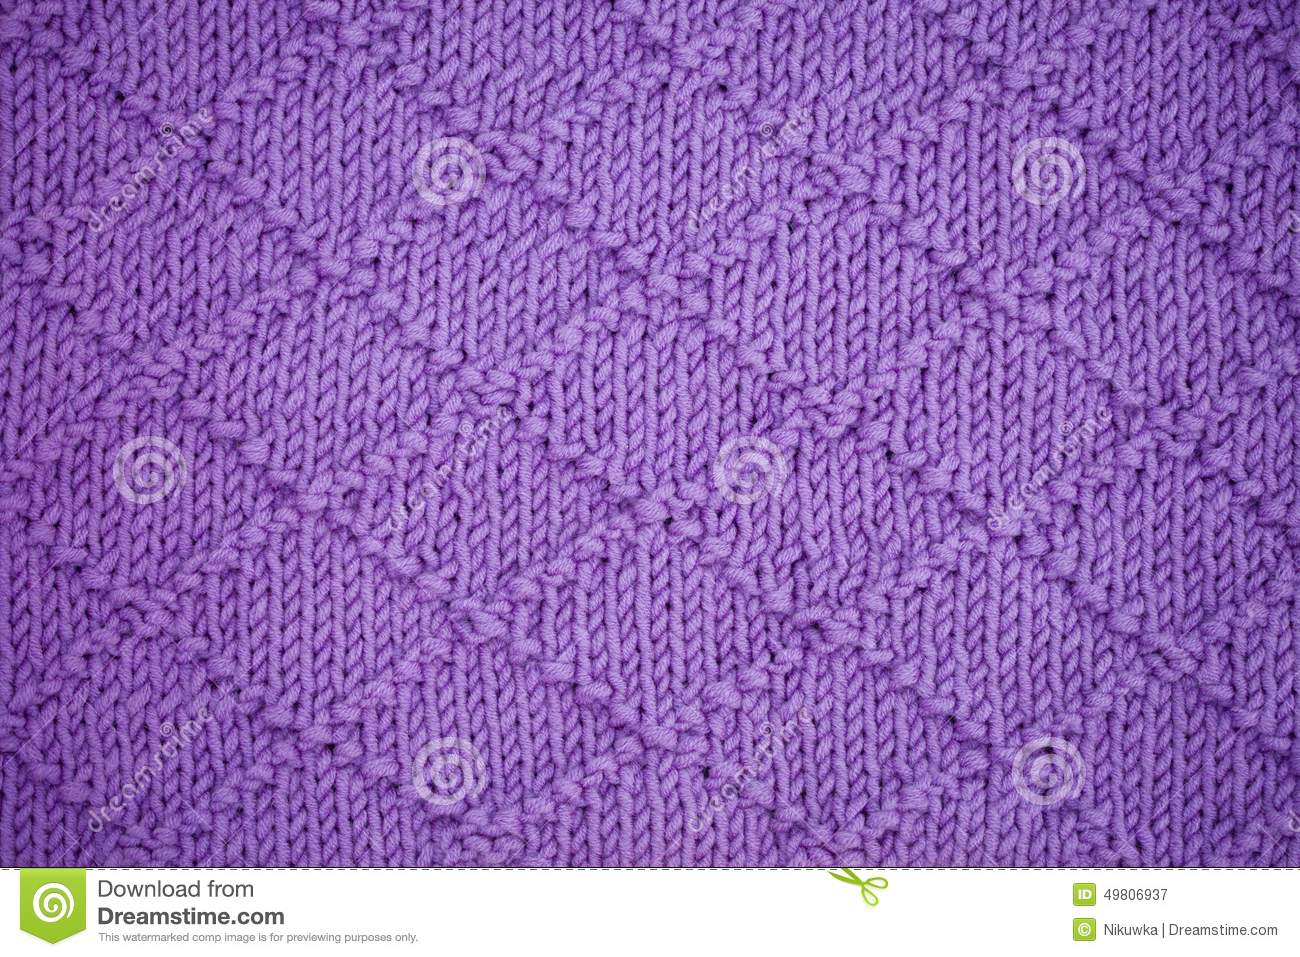 Knitting Background Texture : Knitting wool sweater texture close up stock image